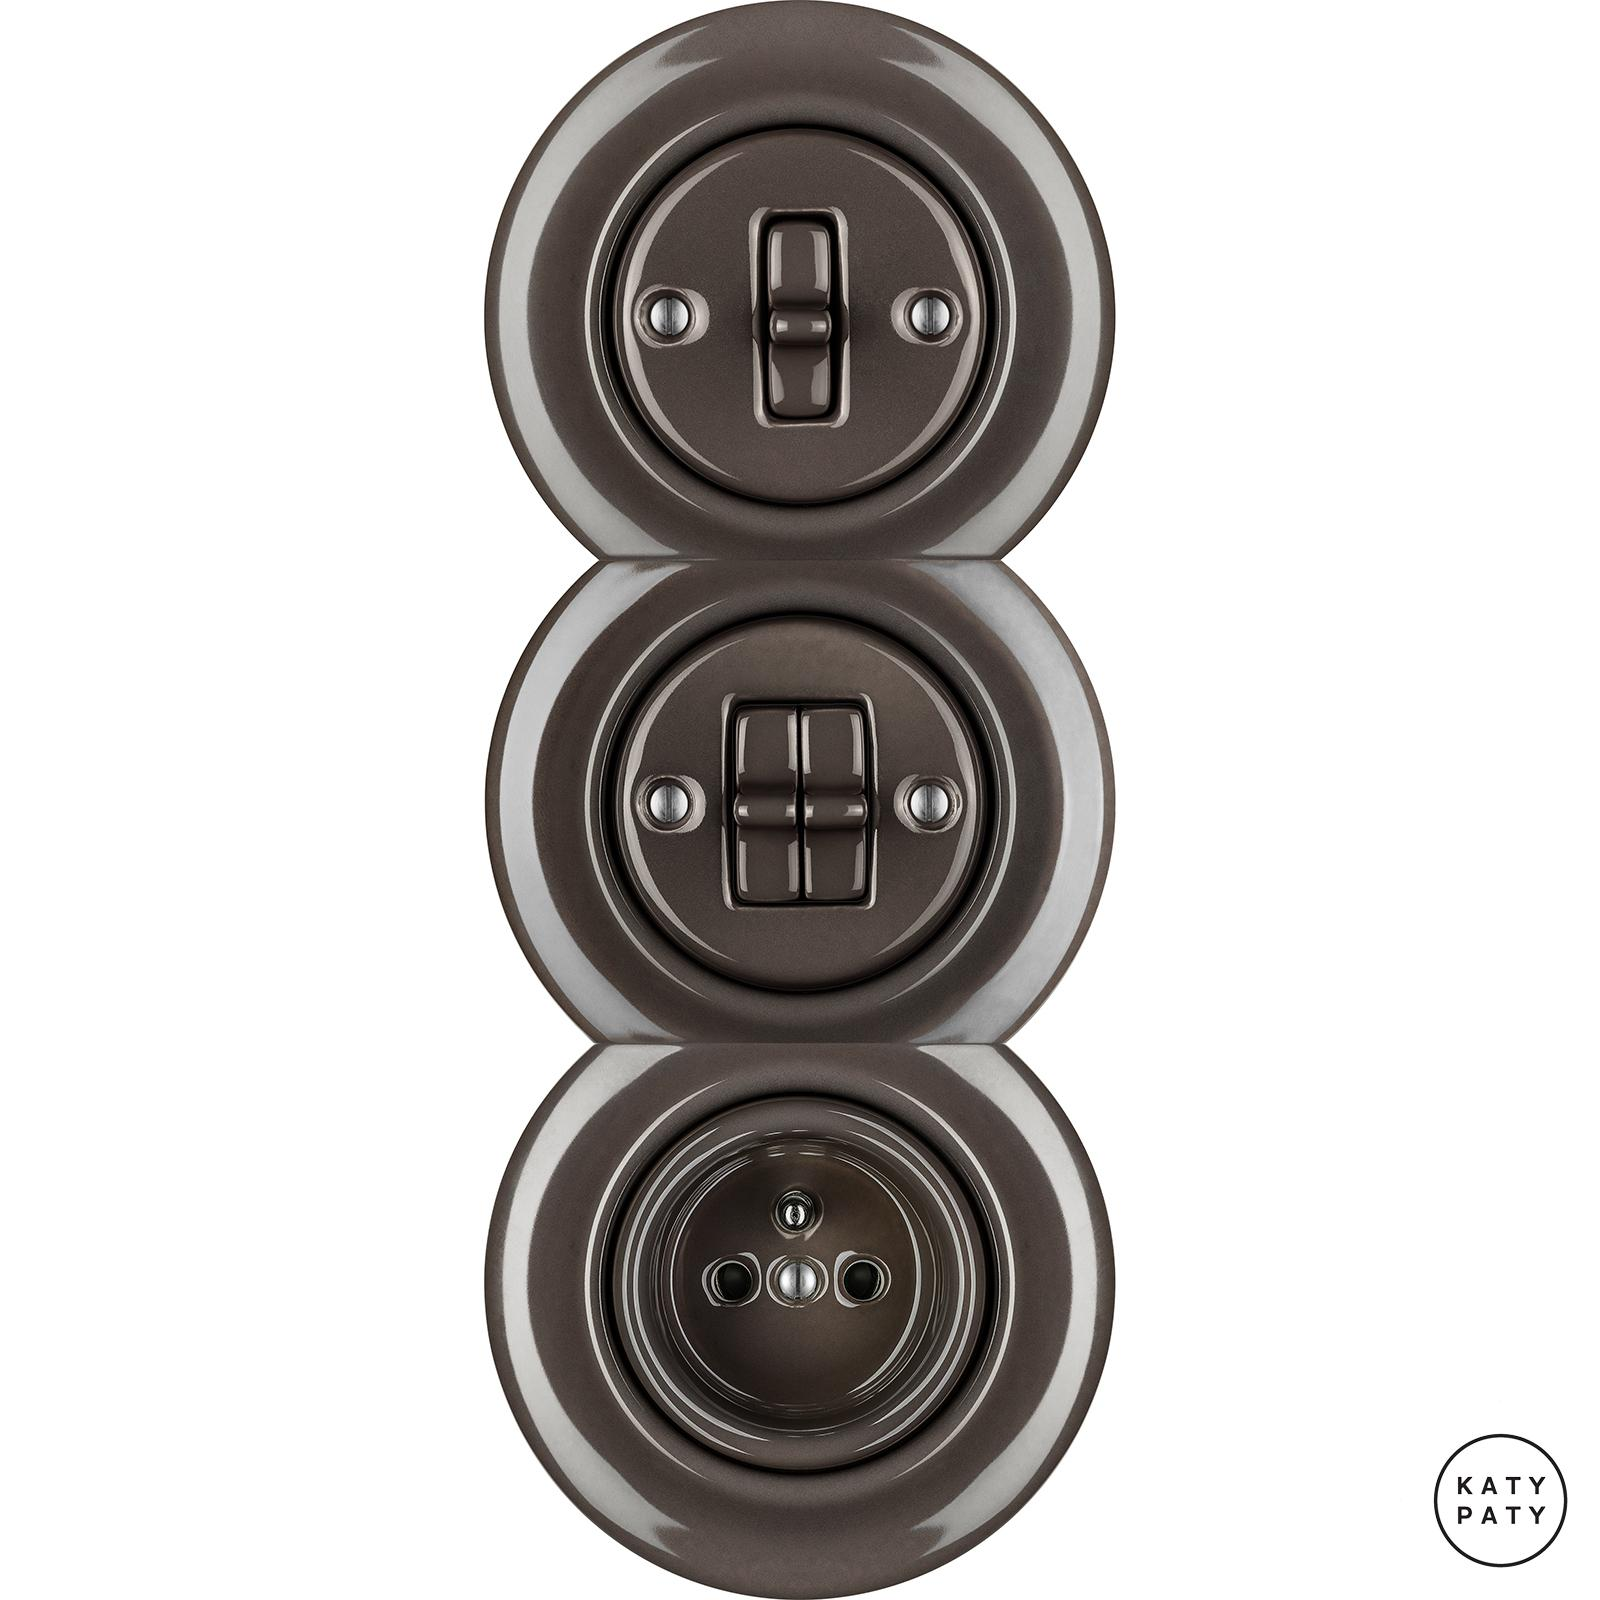 Porcelain switches - a 2 gang - multiple X ()  - BRUNETUM | Katy Paty